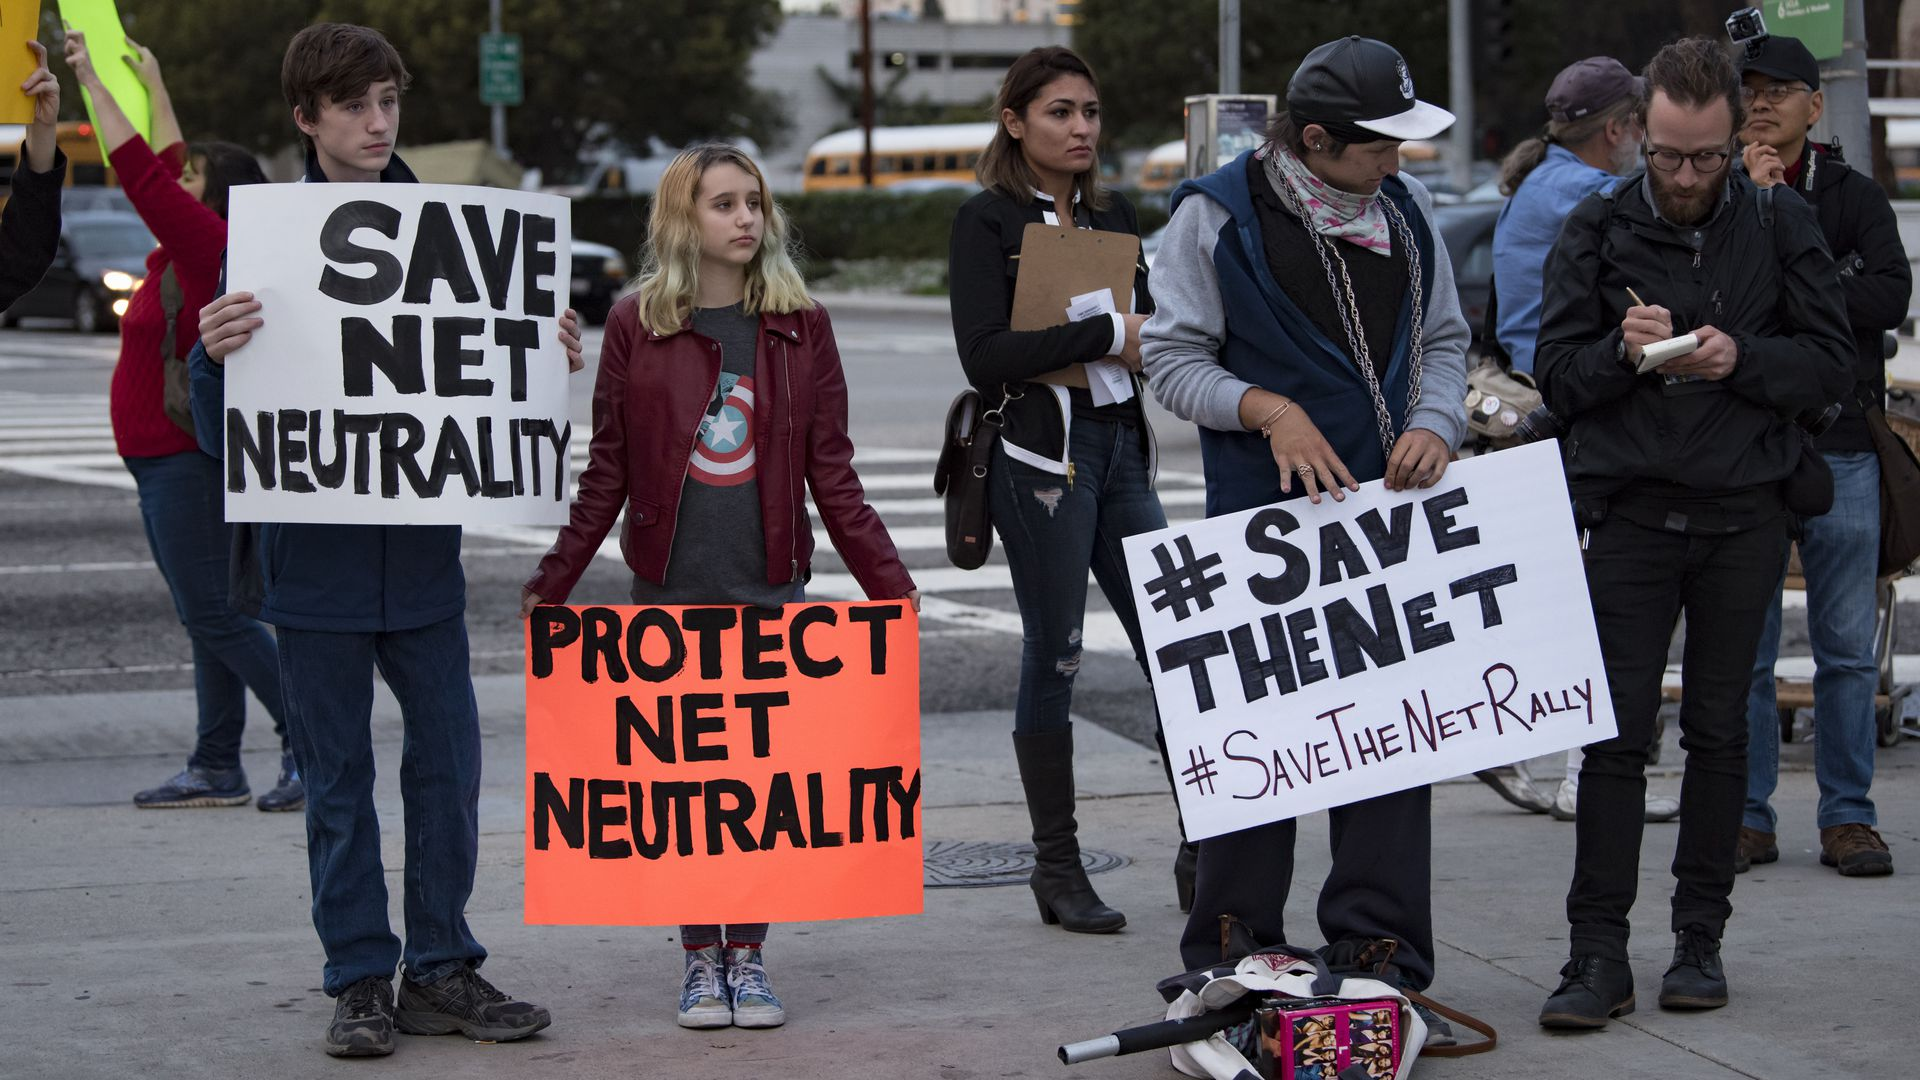 Protesters with signs against repealing net neutrality